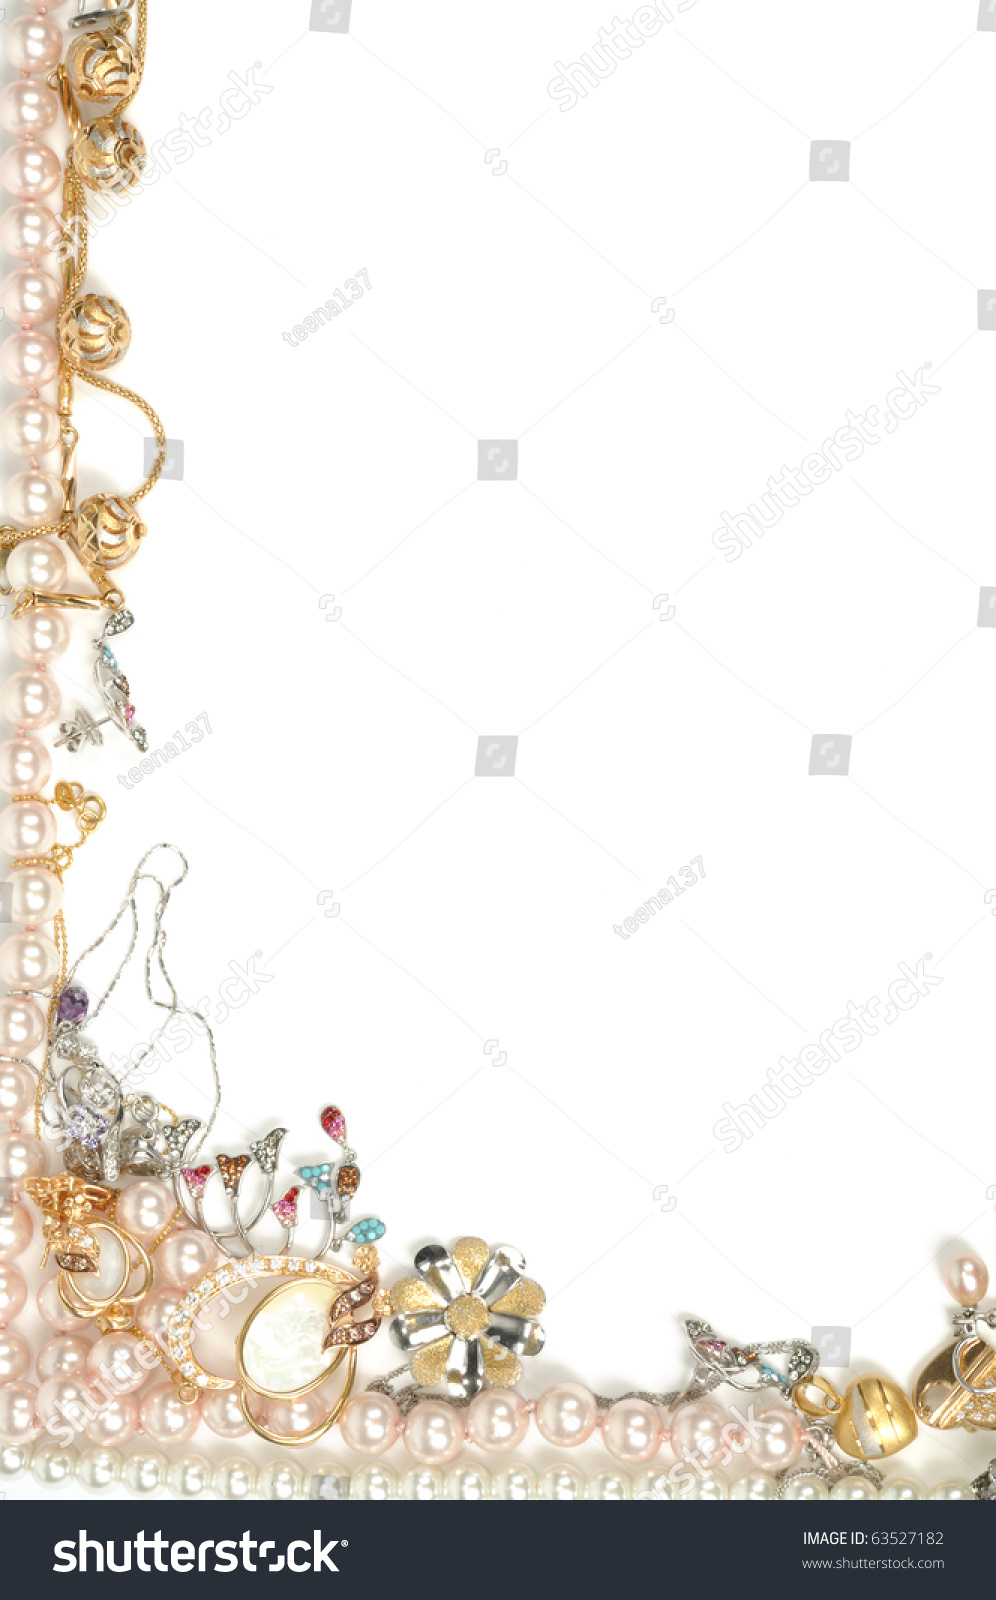 Border From Gold Jewelry Isolated On White Stock Photo